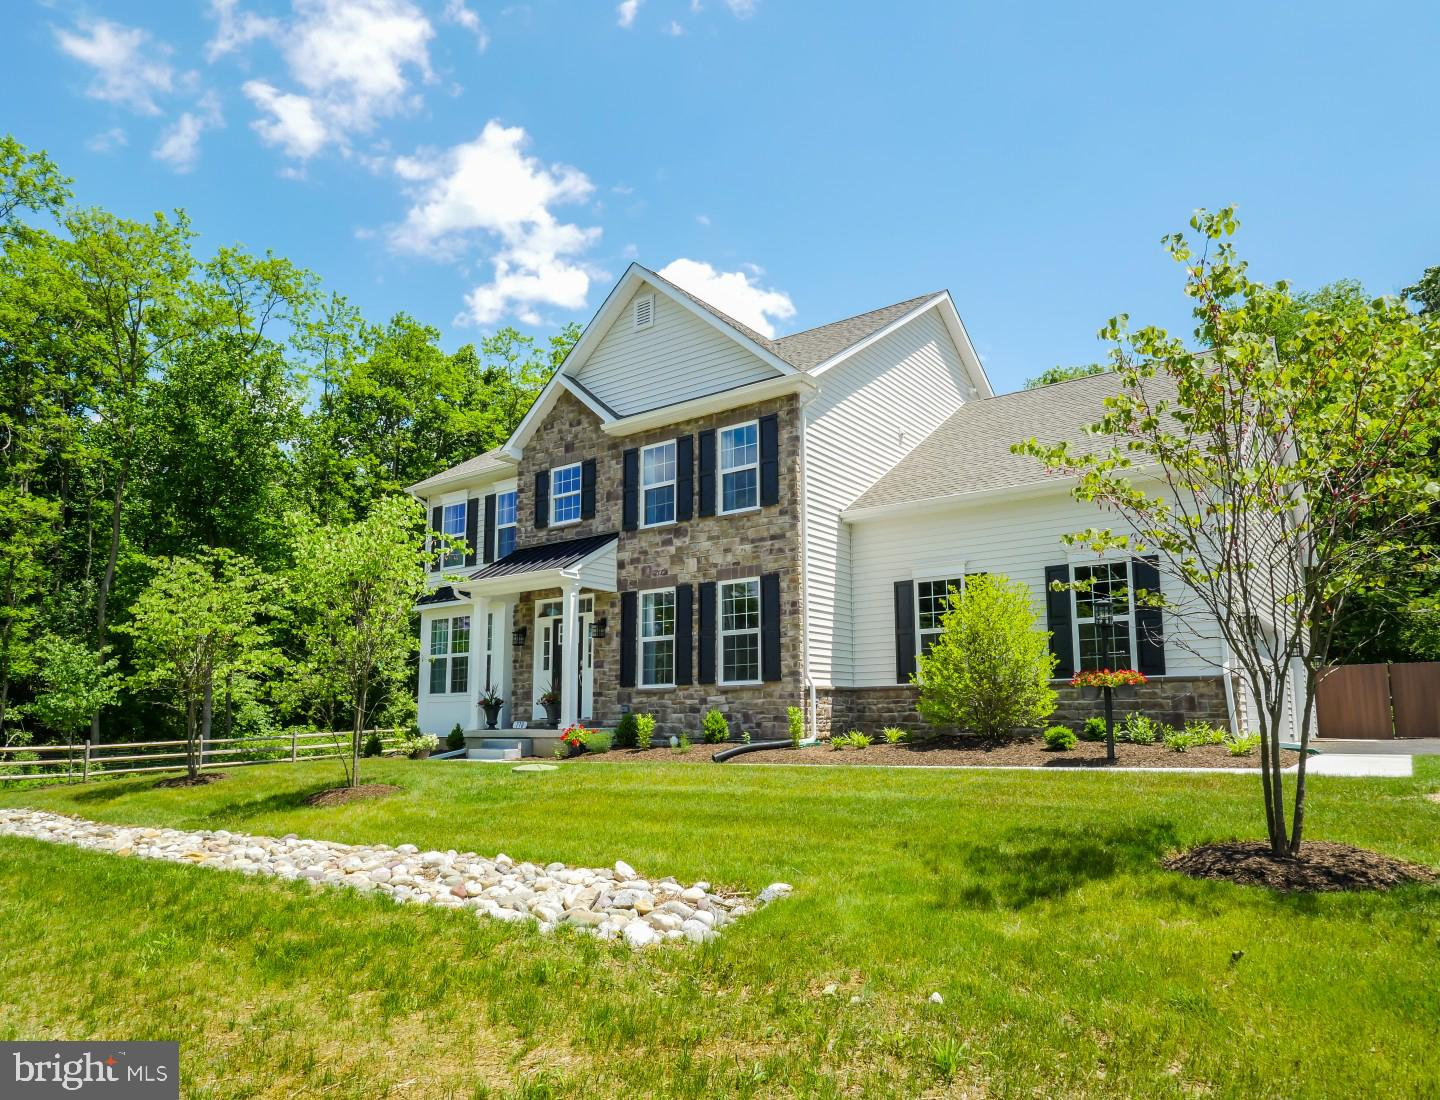 1547 OLD WELSH ROAD, HUNTINGDON VALLEY, PA 19006